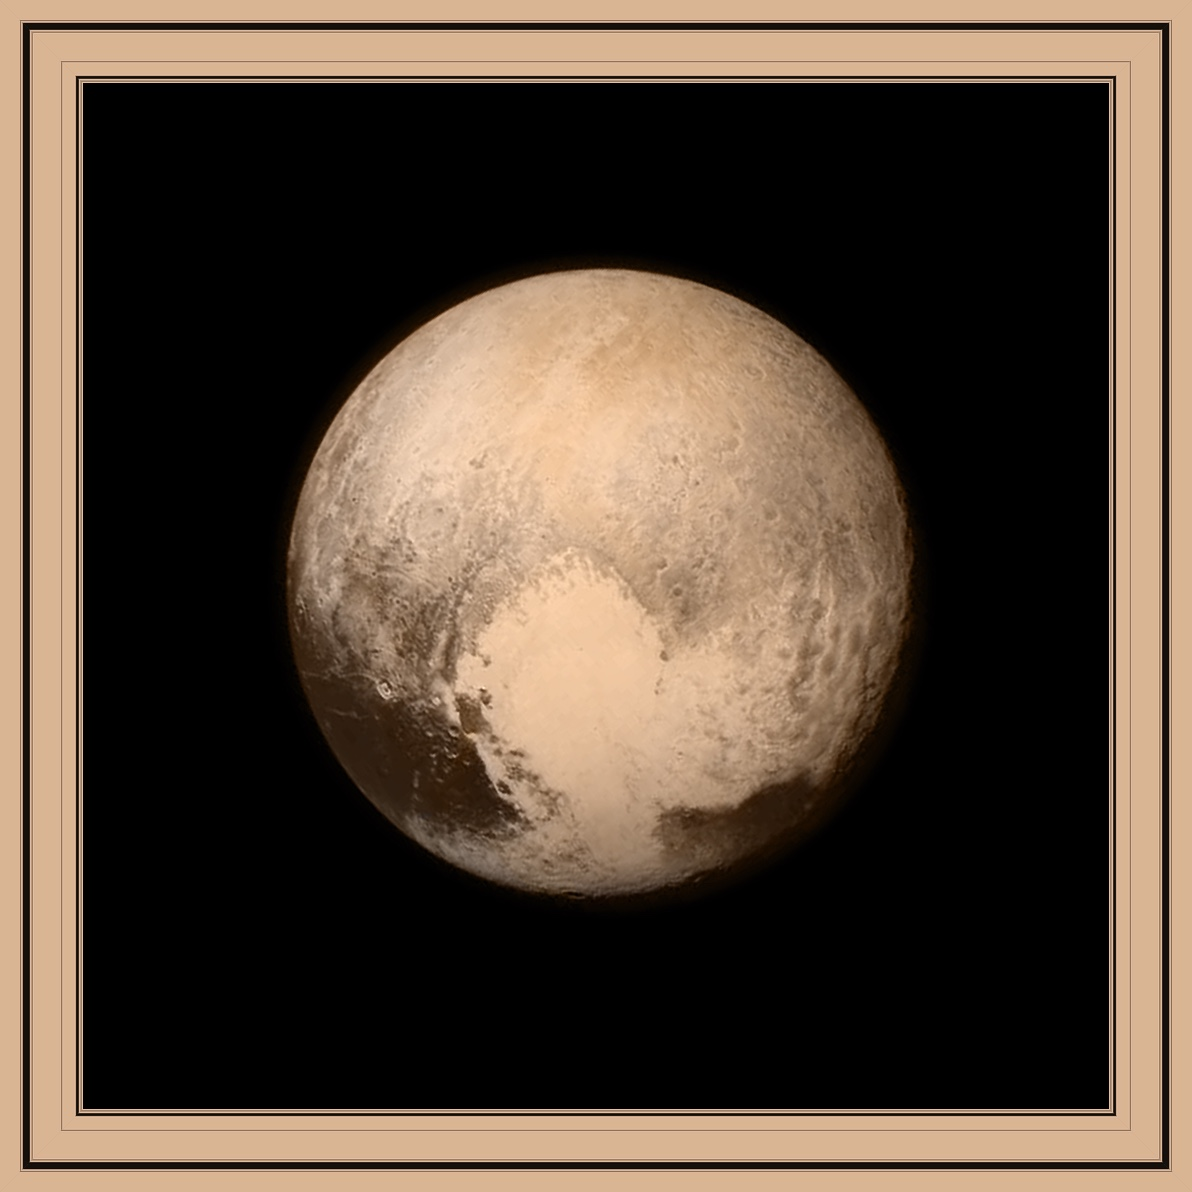 Pluto has been framed